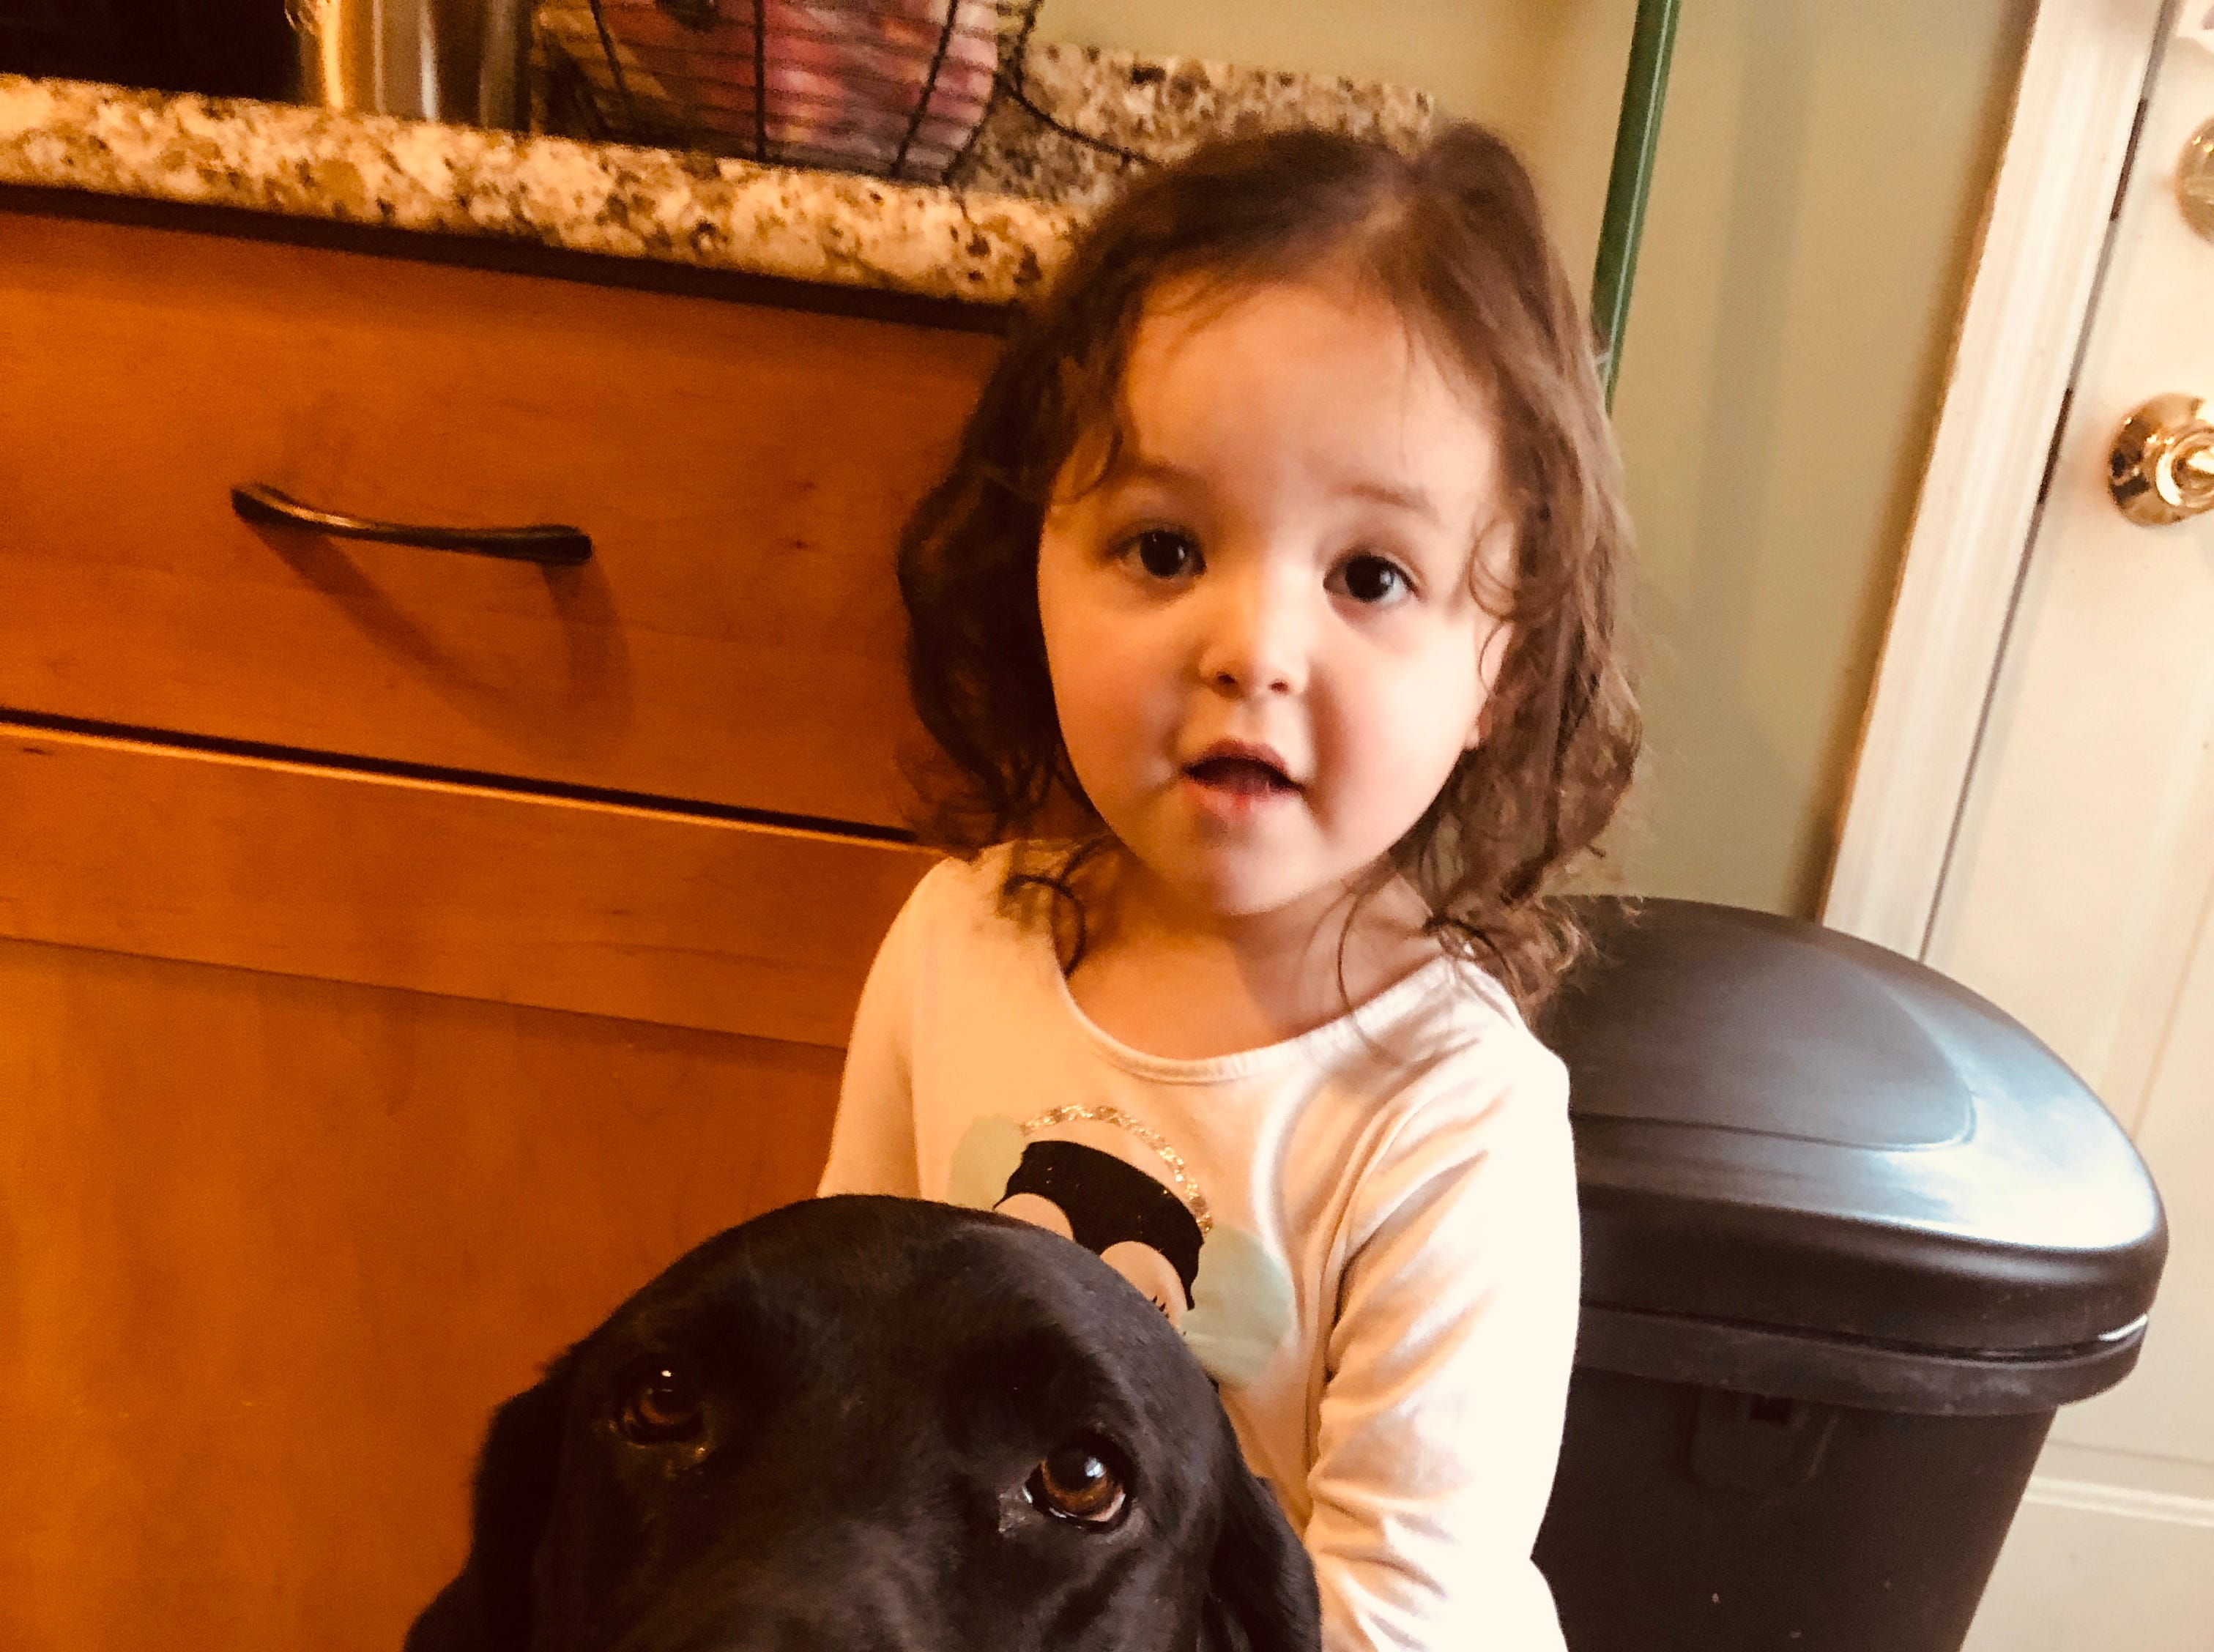 Mattie, a nearly 7-year-old bomb detection dog, with one of the children at the Old Bridge home where the dogs lives with his K9 handler Seamus Fennessy.